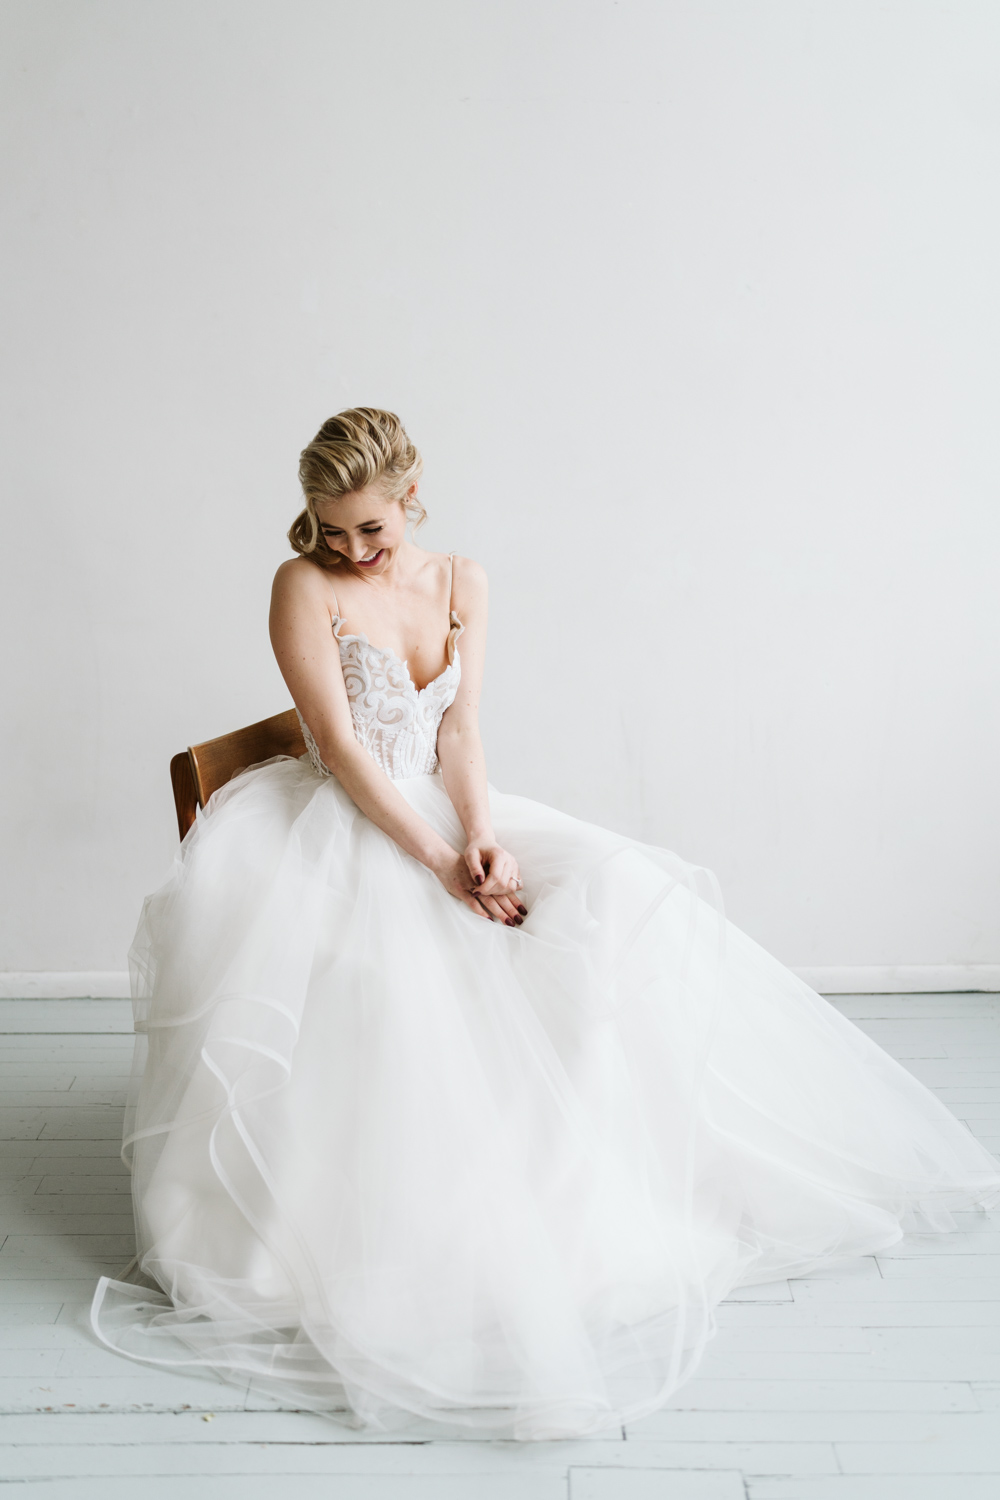 April Yentas Photography - January Styled Shoot-88.jpg